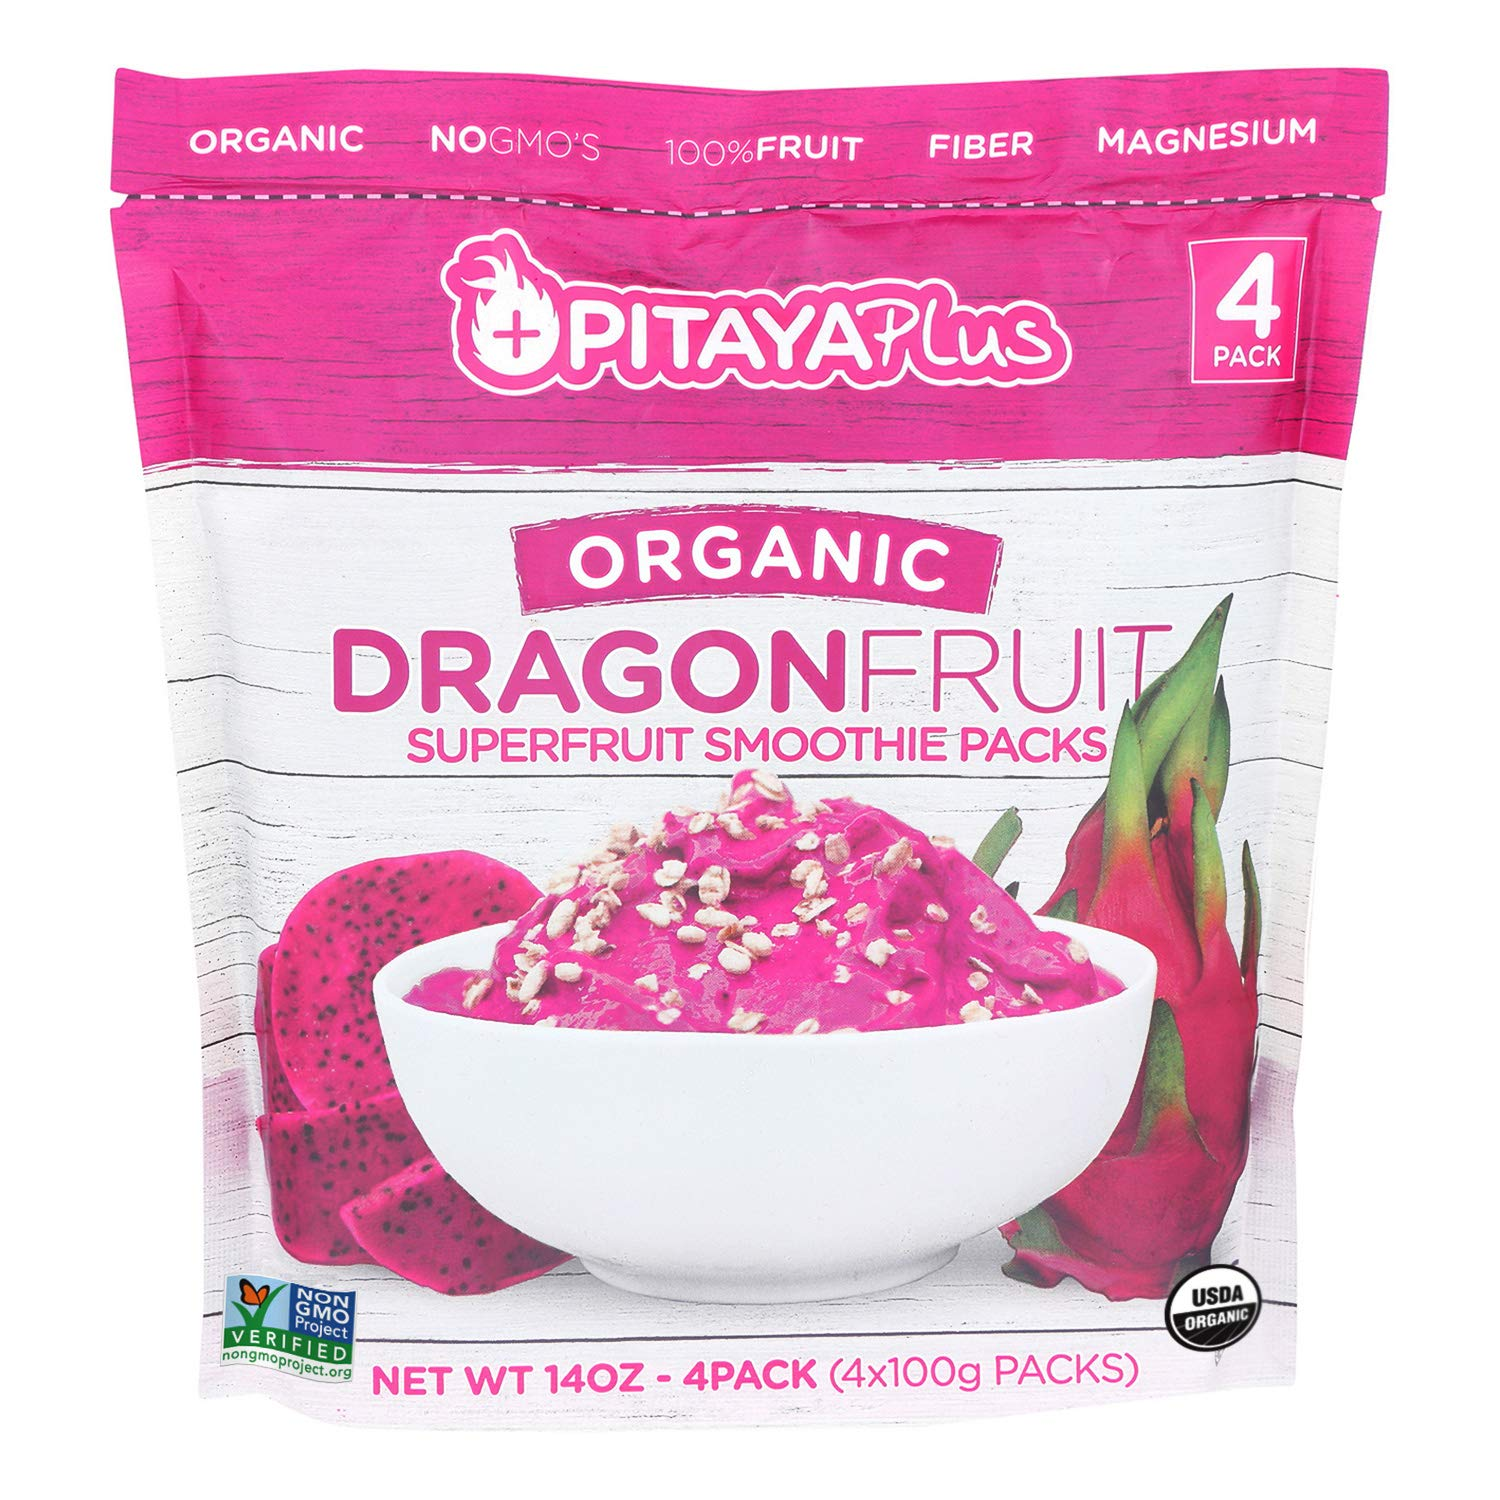 Pitaya Plus Organic Red Dragon Fruit Smoothie Pack. Frozen Puree Packets that are a Good Source of Fiber, Magnesium, Potassium, Iron & More. 14 oz (Pack of 15)